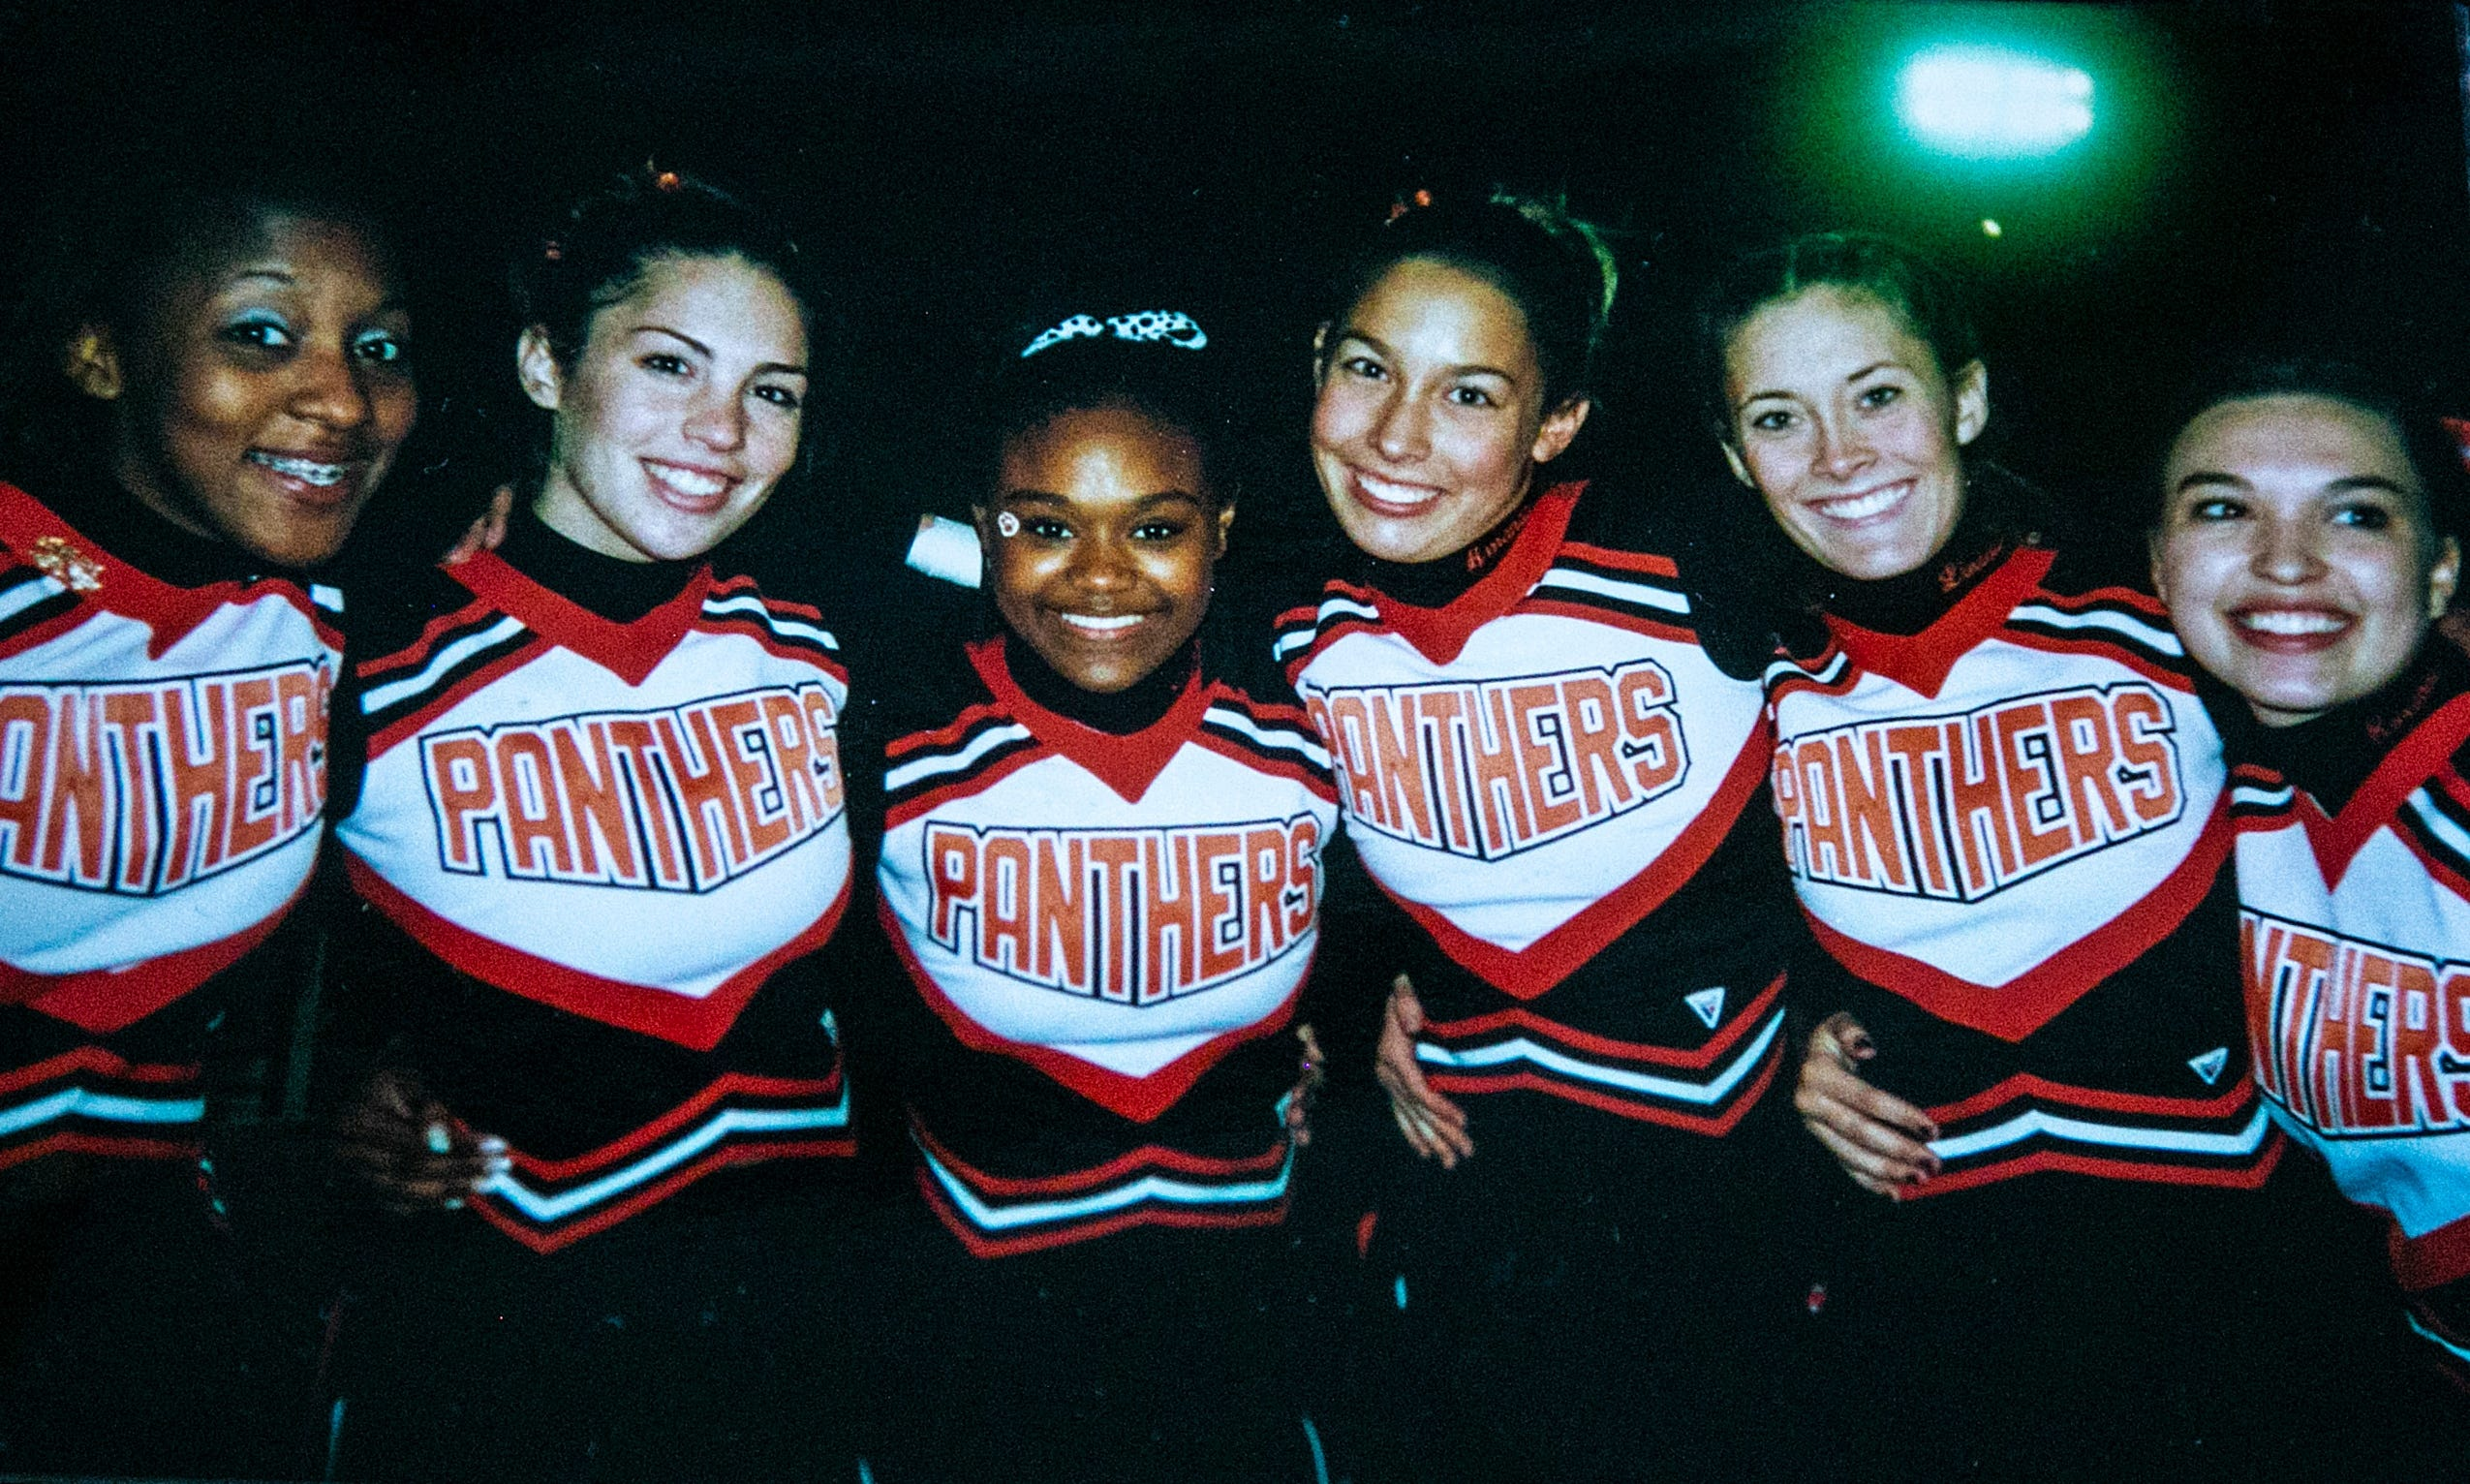 United Township High School cheerleaders, including Amanda Adams, third from right, pose for a photo during the homecoming game in 2001.